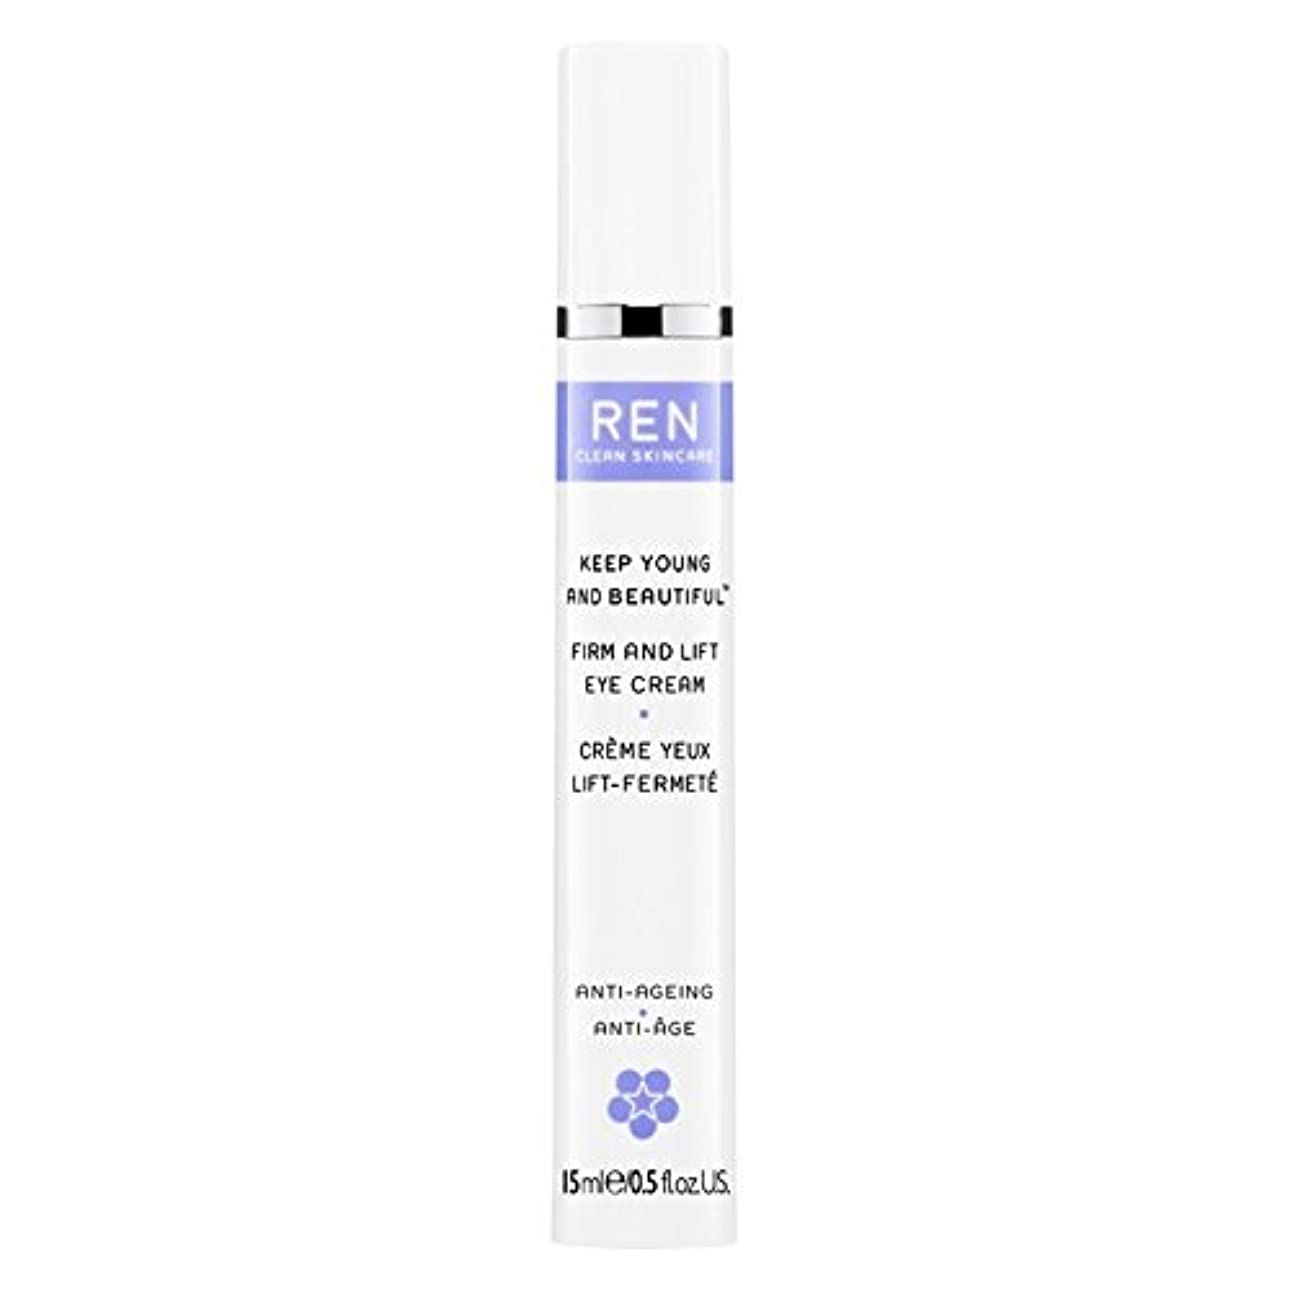 Ren若くて美しい?しっかりとリフトアイクリーム15ミリリットルを保ちます (REN) (x6) - REN Keep Young and Beautiful? Firm and Lift Eye Cream 15ml (Pack of 6) [並行輸入品]